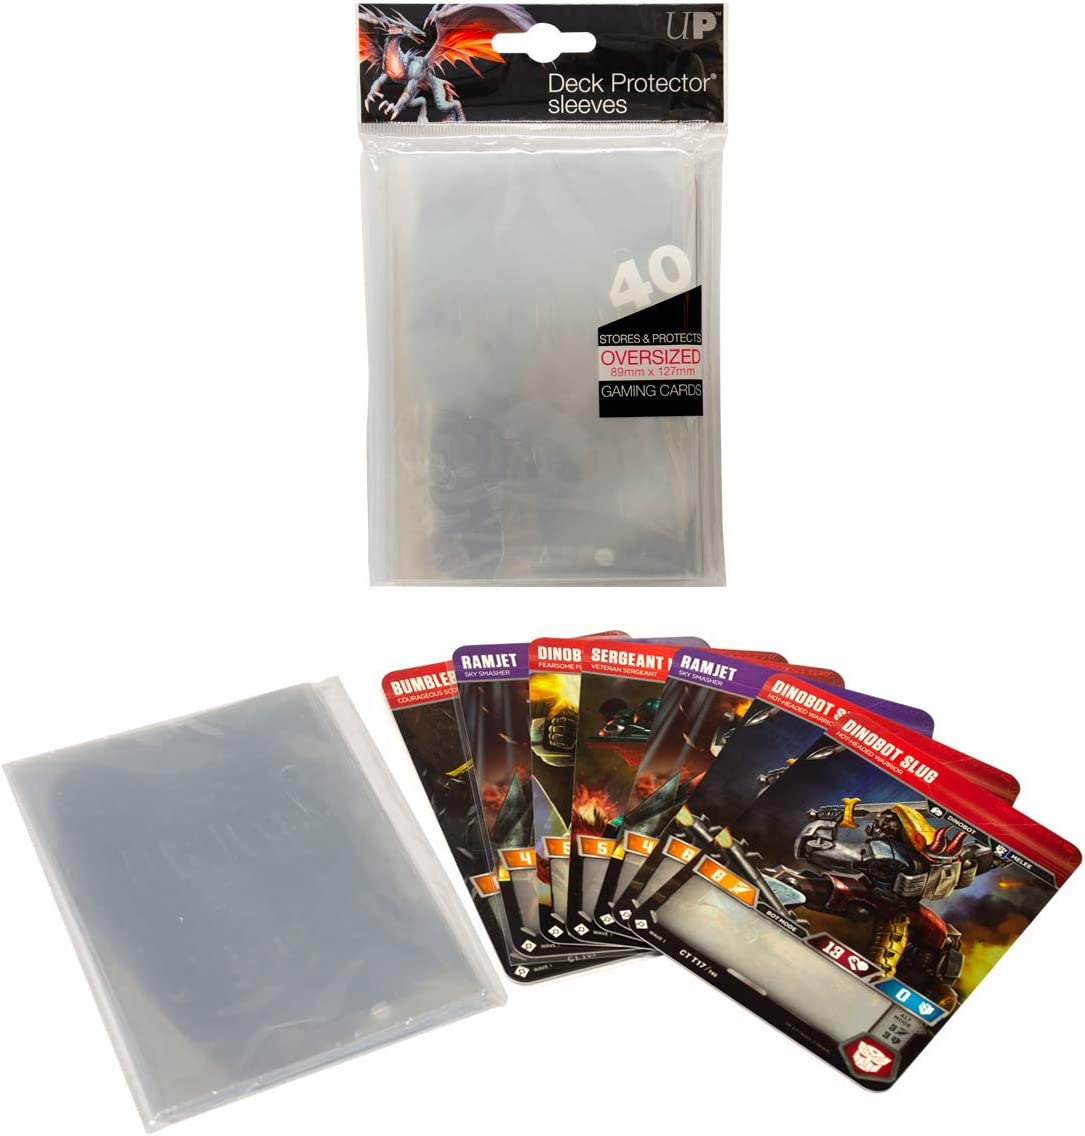 ULTIMATE GUARD Oversized Bundle Black Card Deck Protector Sleeves Precise-Fit